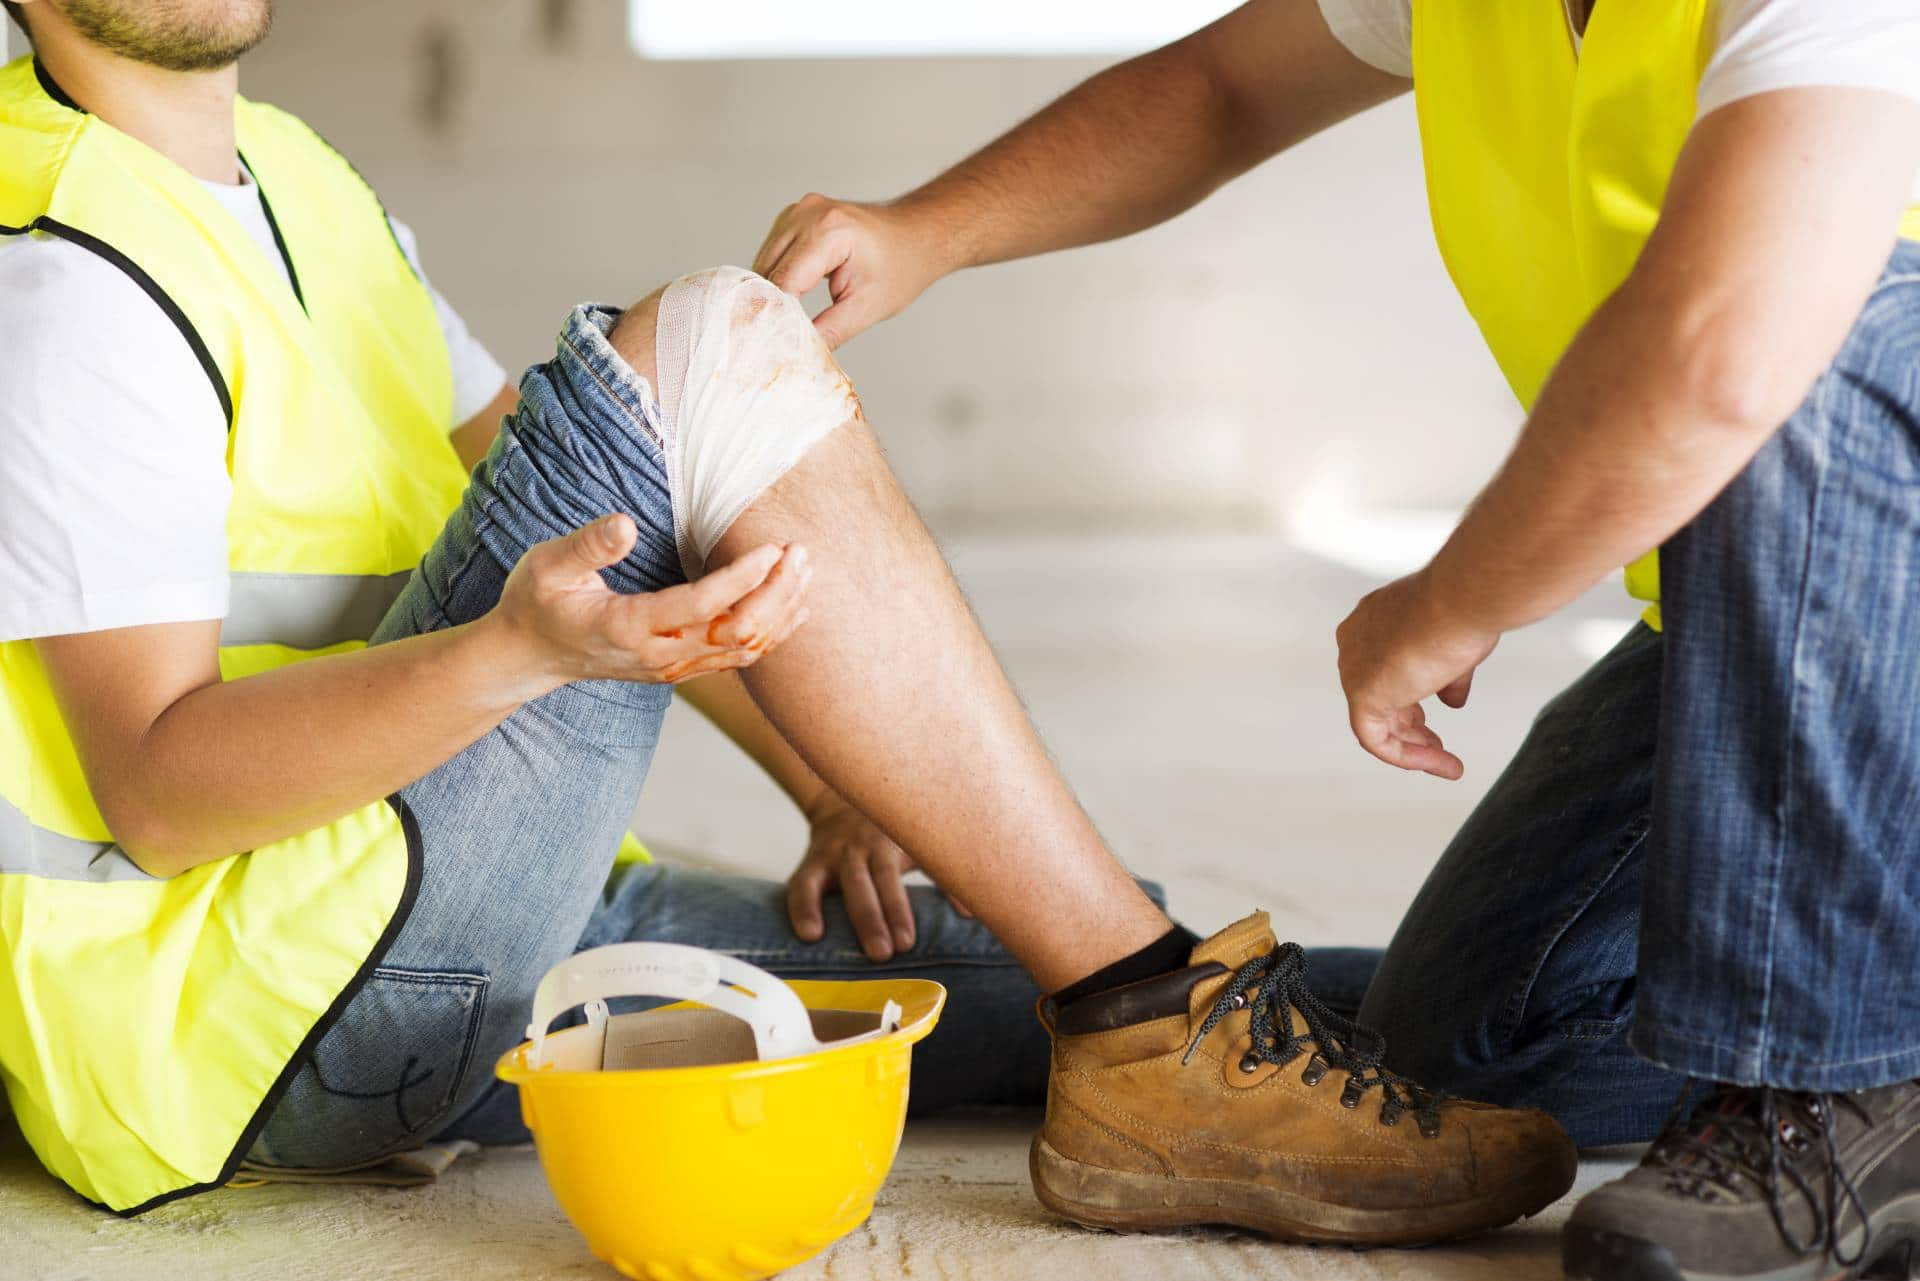 Hurt on the job? Schedule a free consultation with our personal injury lawyers at the Angell Law Firm in Berkeley Park.